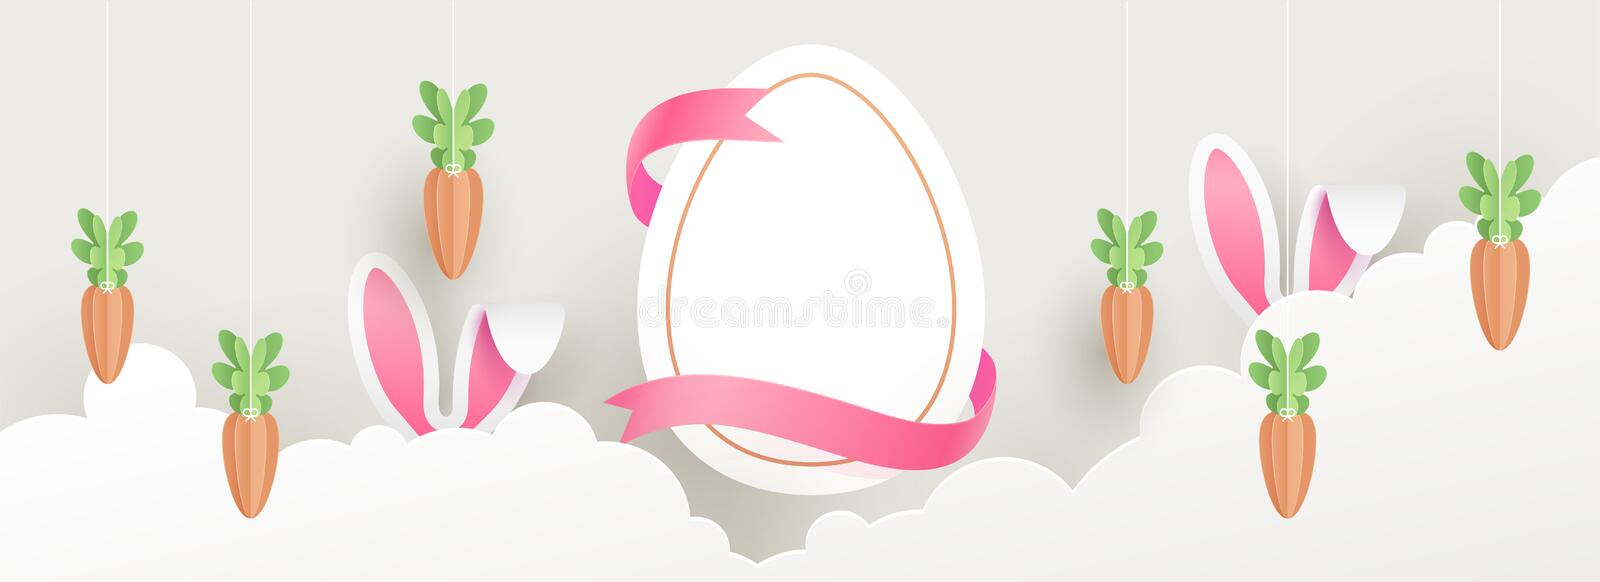 Paper cut header banner or poster design with illustration of easter egg, bunny ears and carrot on sky view background. royalty free illustration